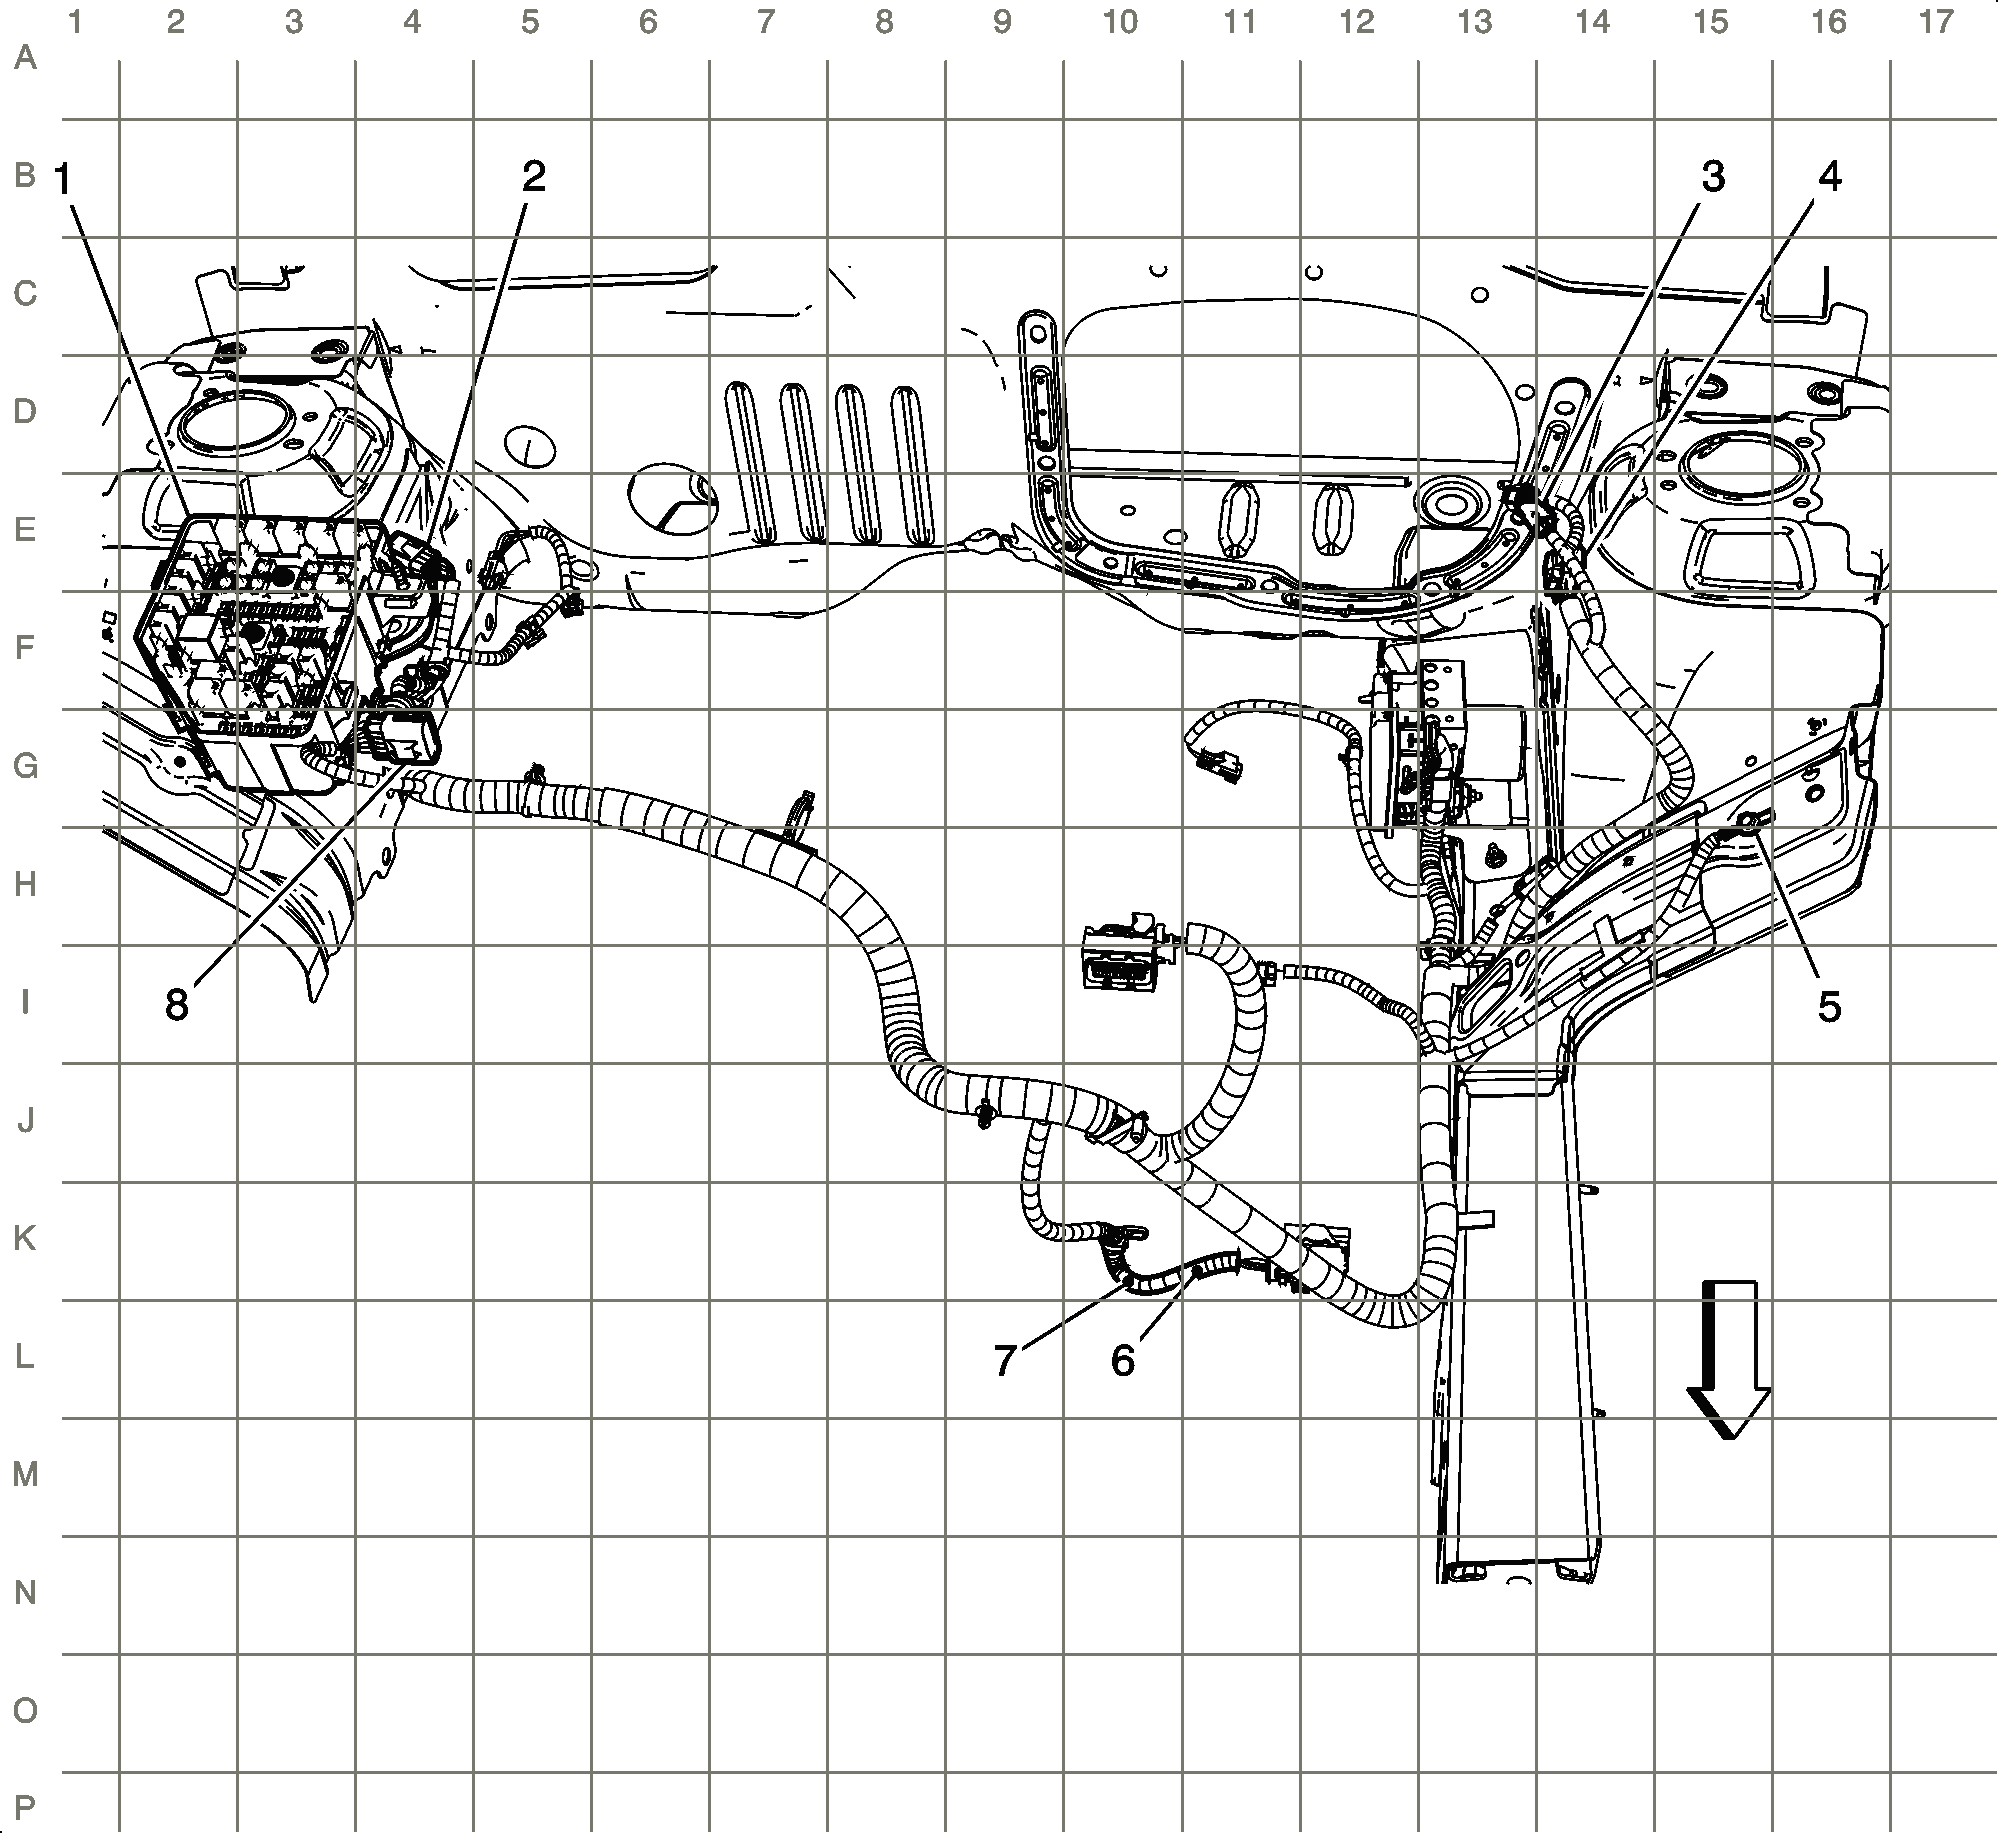 Cadillac Cts Evap Purge Solenoid Valve On Wiring Diagram For 2007 Cts